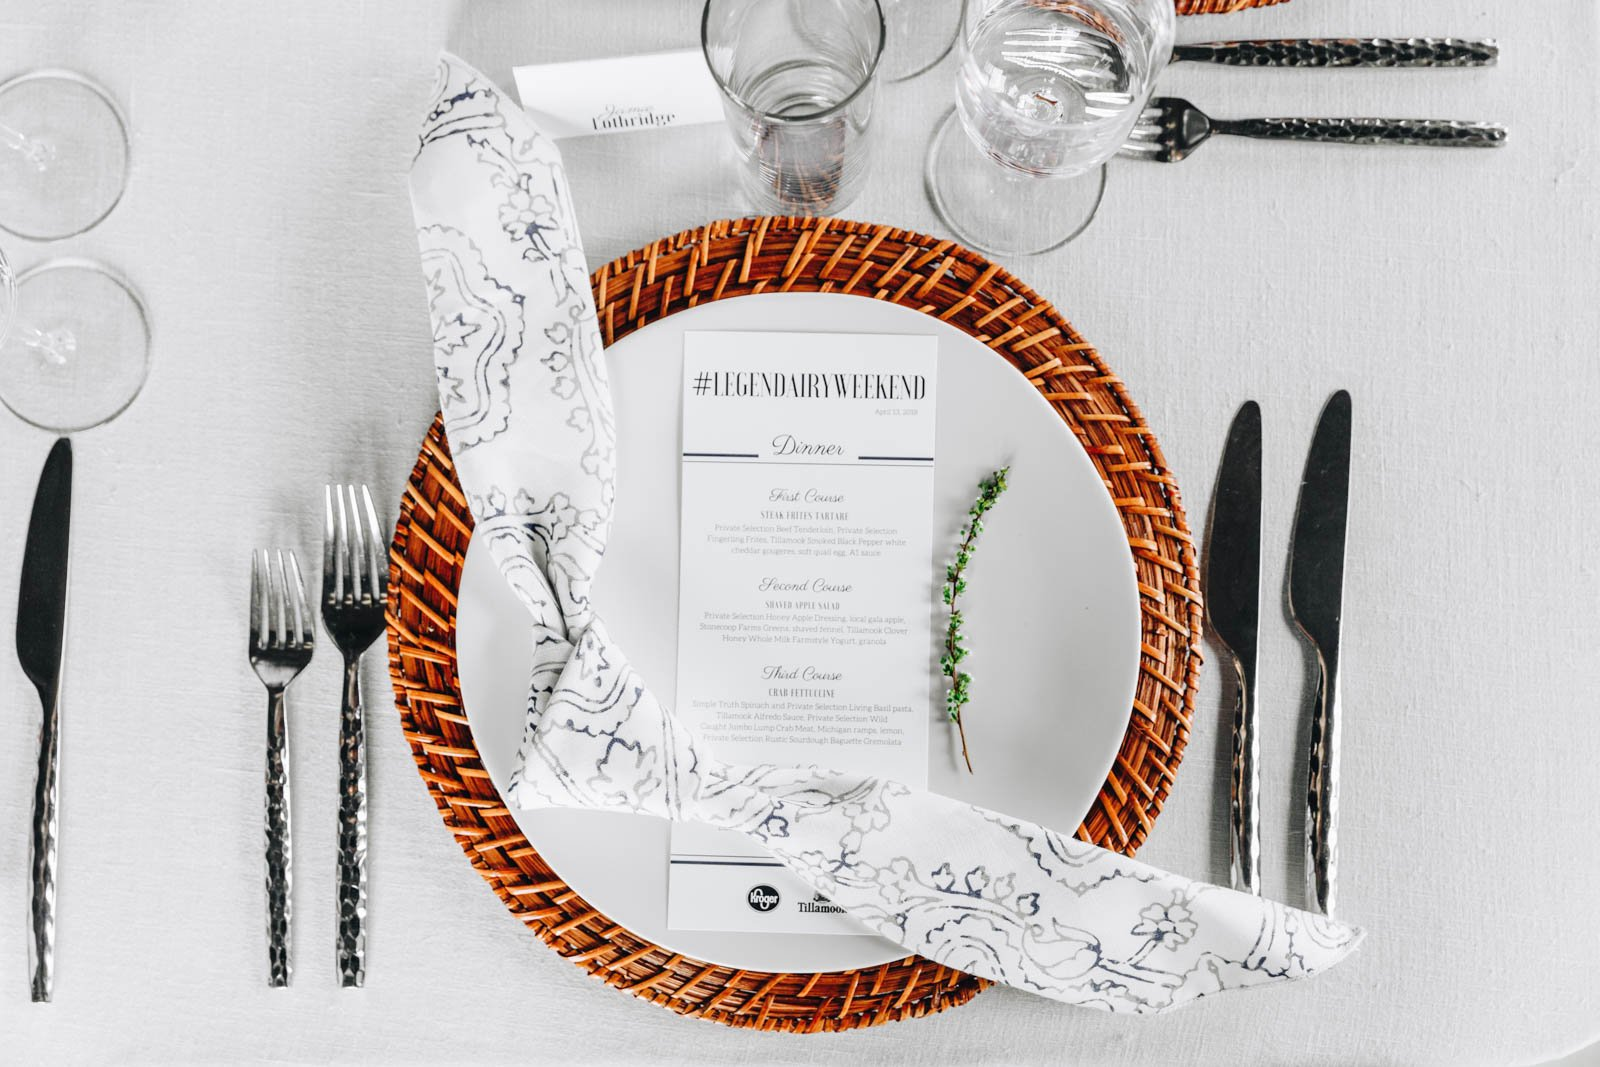 white place setting with a white napkin